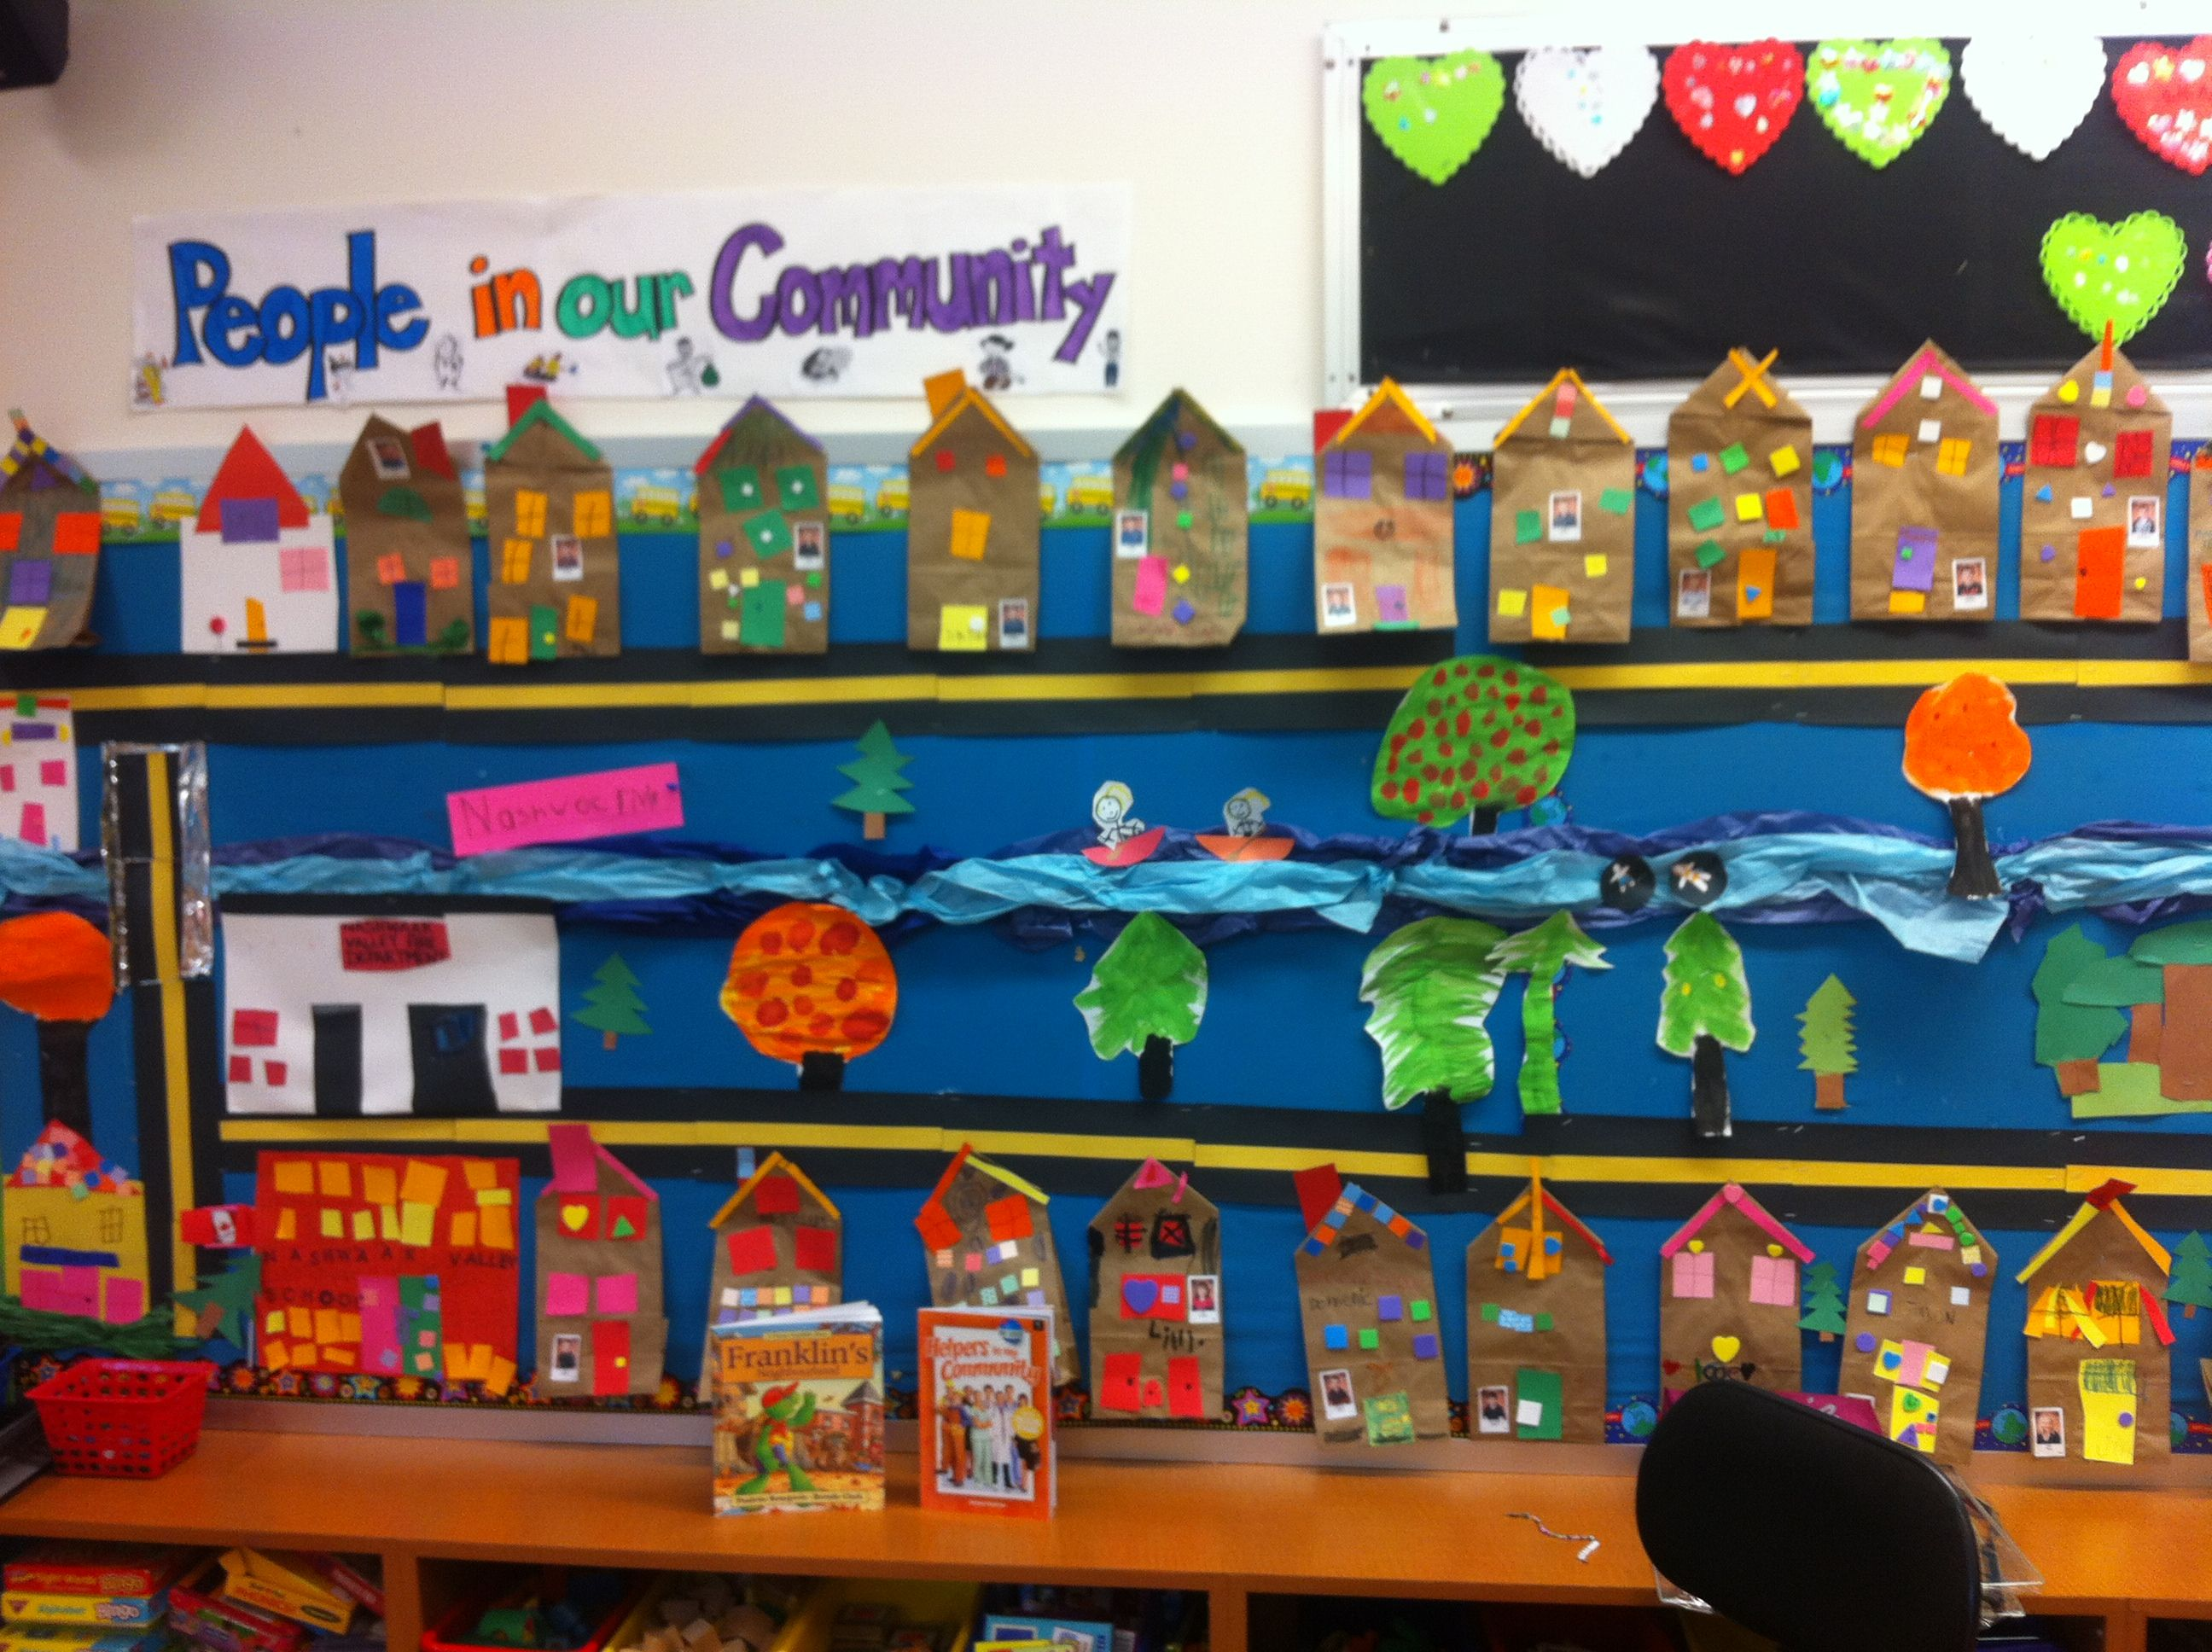 Our Community Map Each Student Made Their House And Other